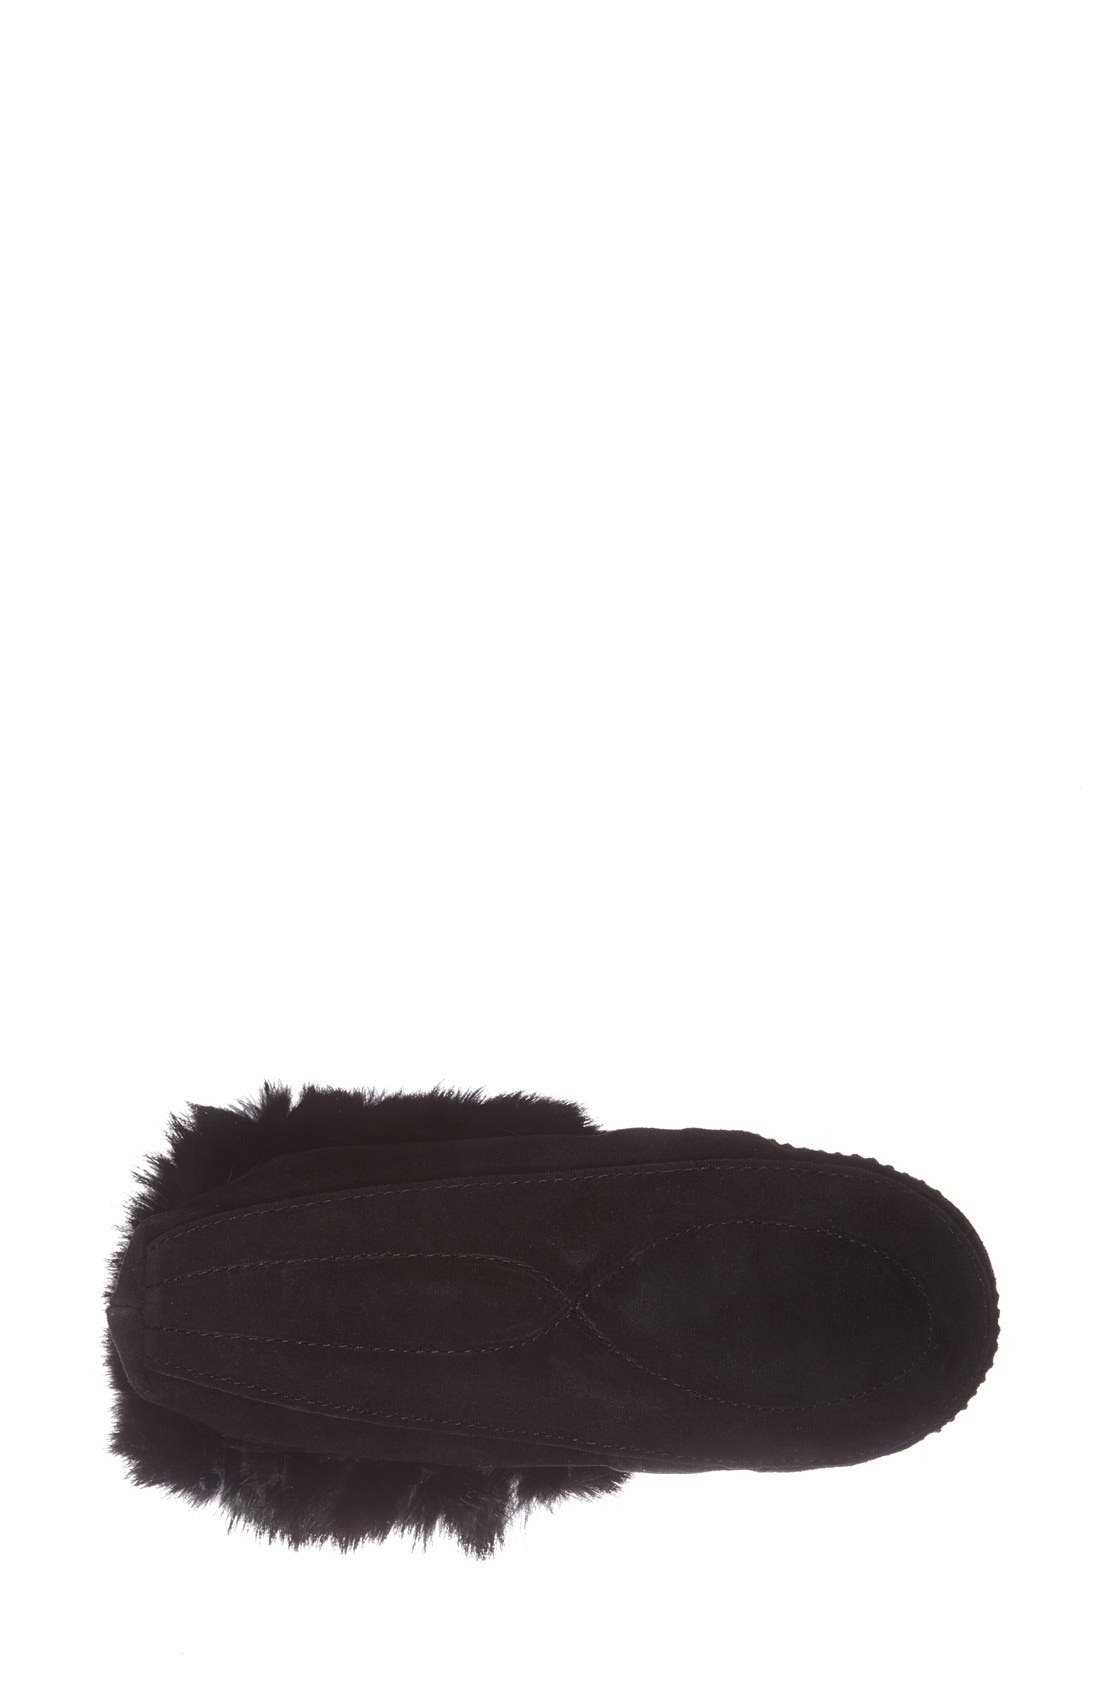 MANITOBAH MUKLUKS, 'Kanada' Genuine Rabbit Fur & Suede Moccasin Slipper, Alternate thumbnail 3, color, 001